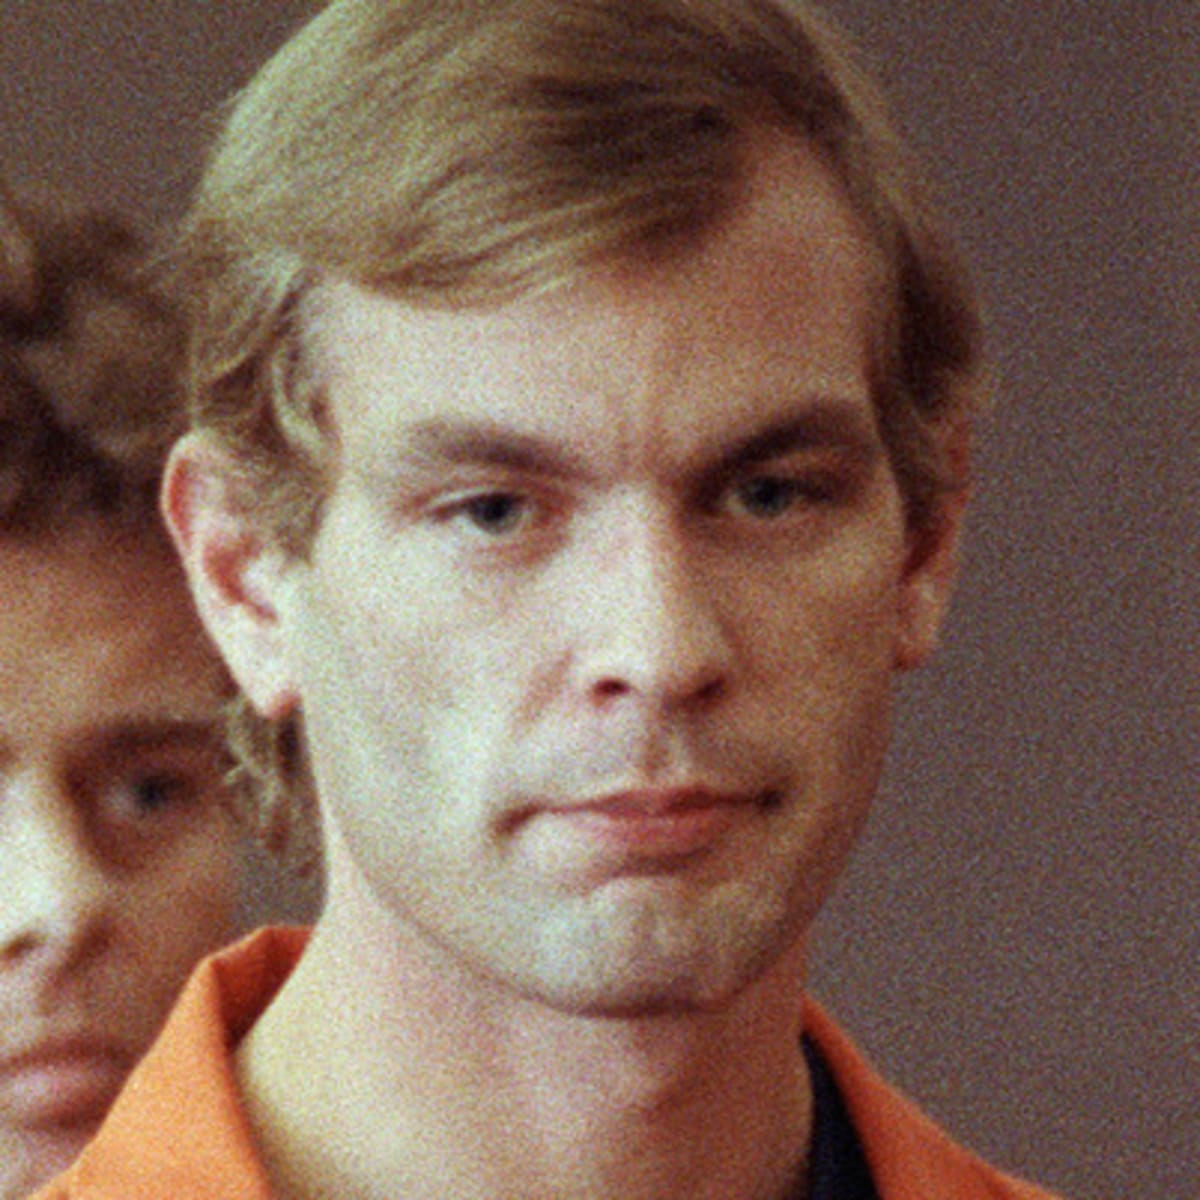 Jeffrey Dahmer Murders Victims Death Biography In the late 1970s and early 80s he served in the military. jeffrey dahmer murders victims